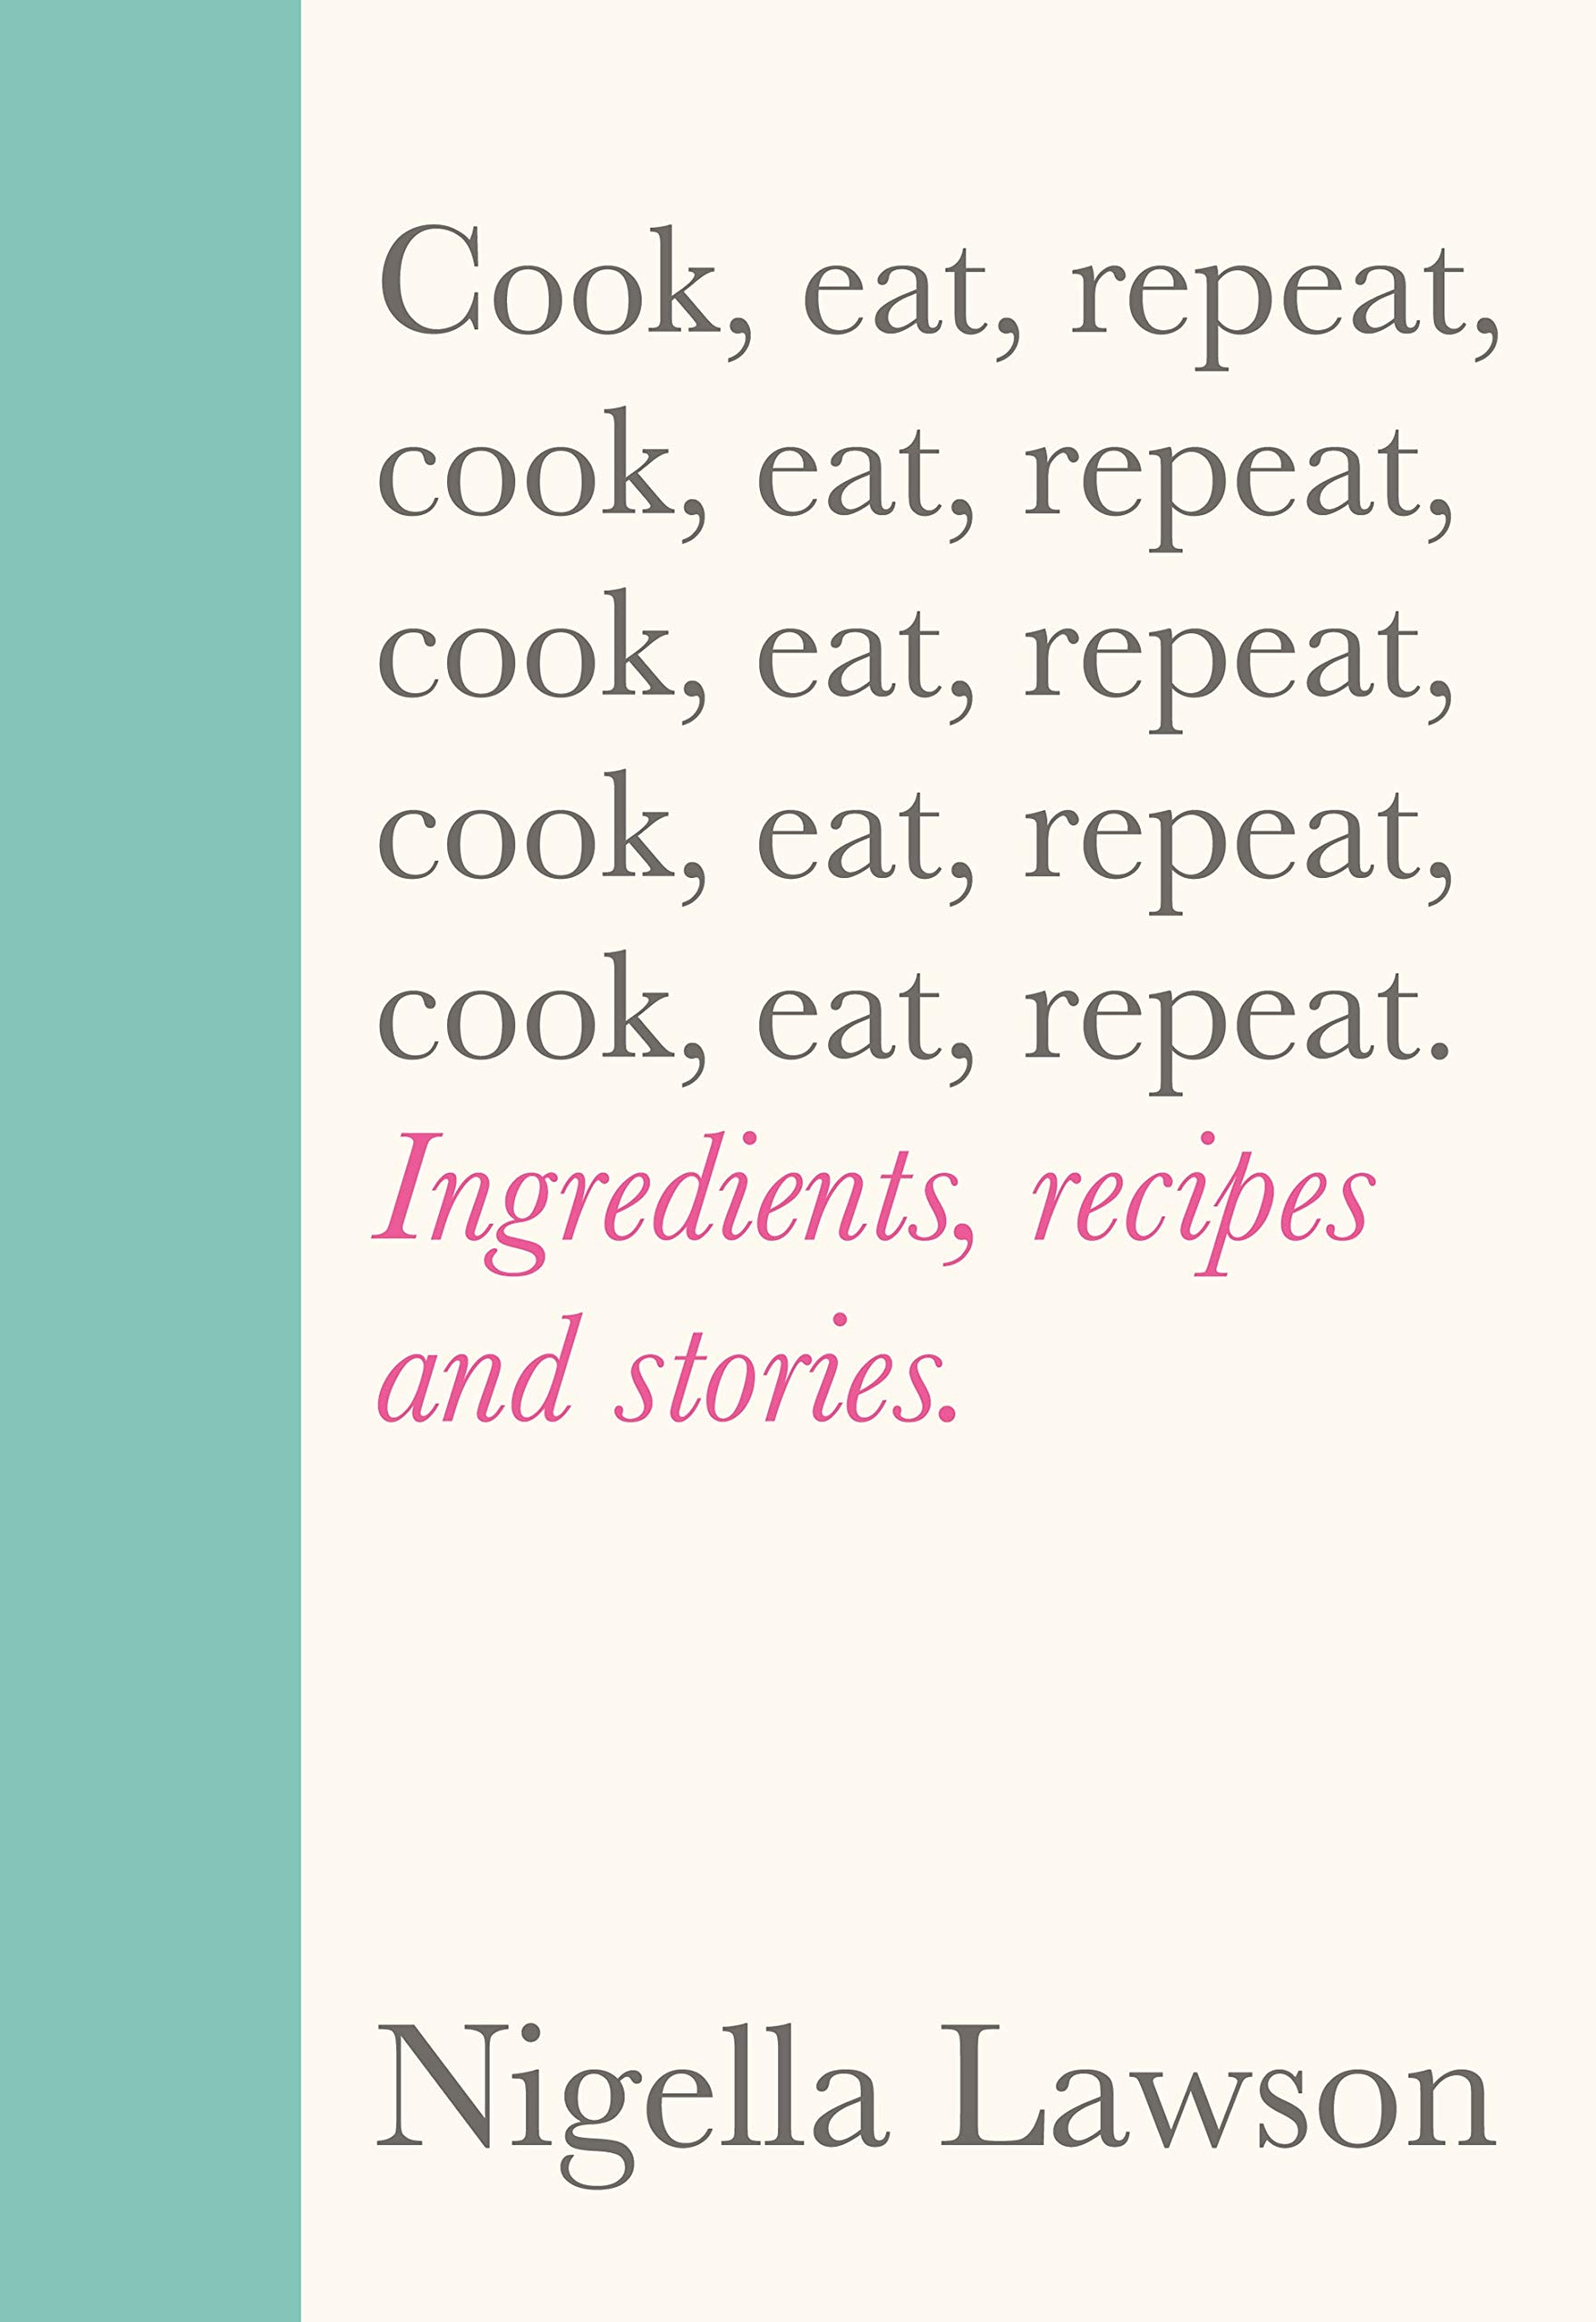 Cook eat repeat by Nigella Lawson